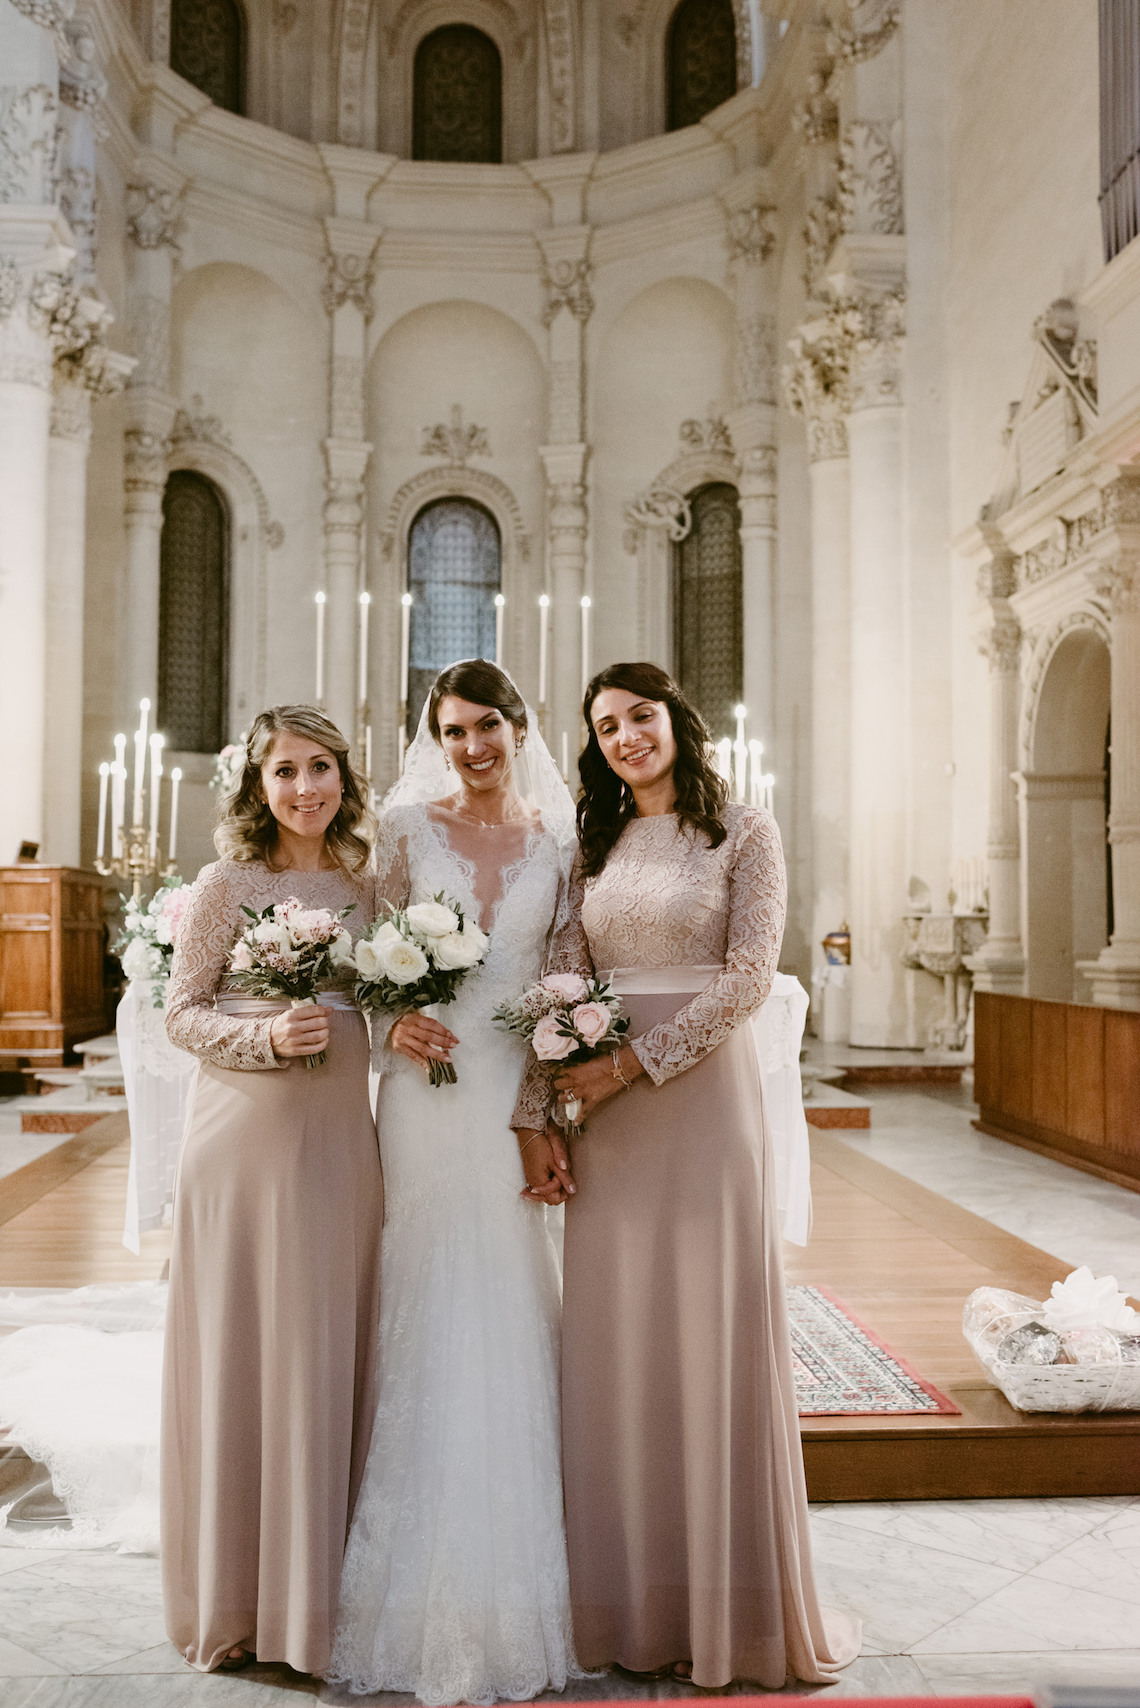 Luxurious Italian Cathedral Wedding On The Seaside | Serena Cevenini 37